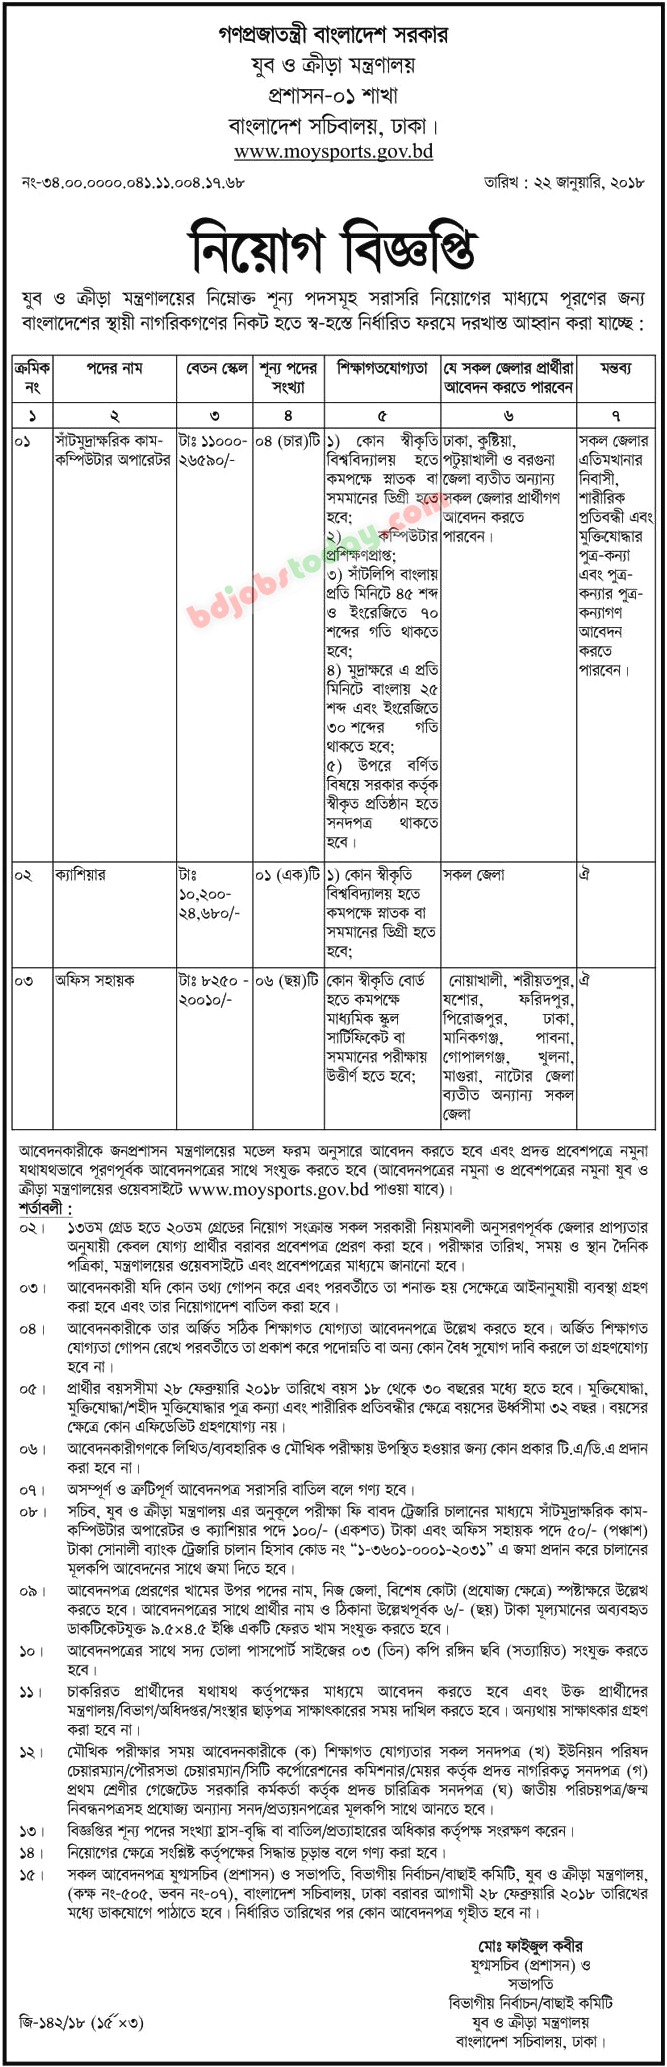 Ministry of Youth and Sports jobs